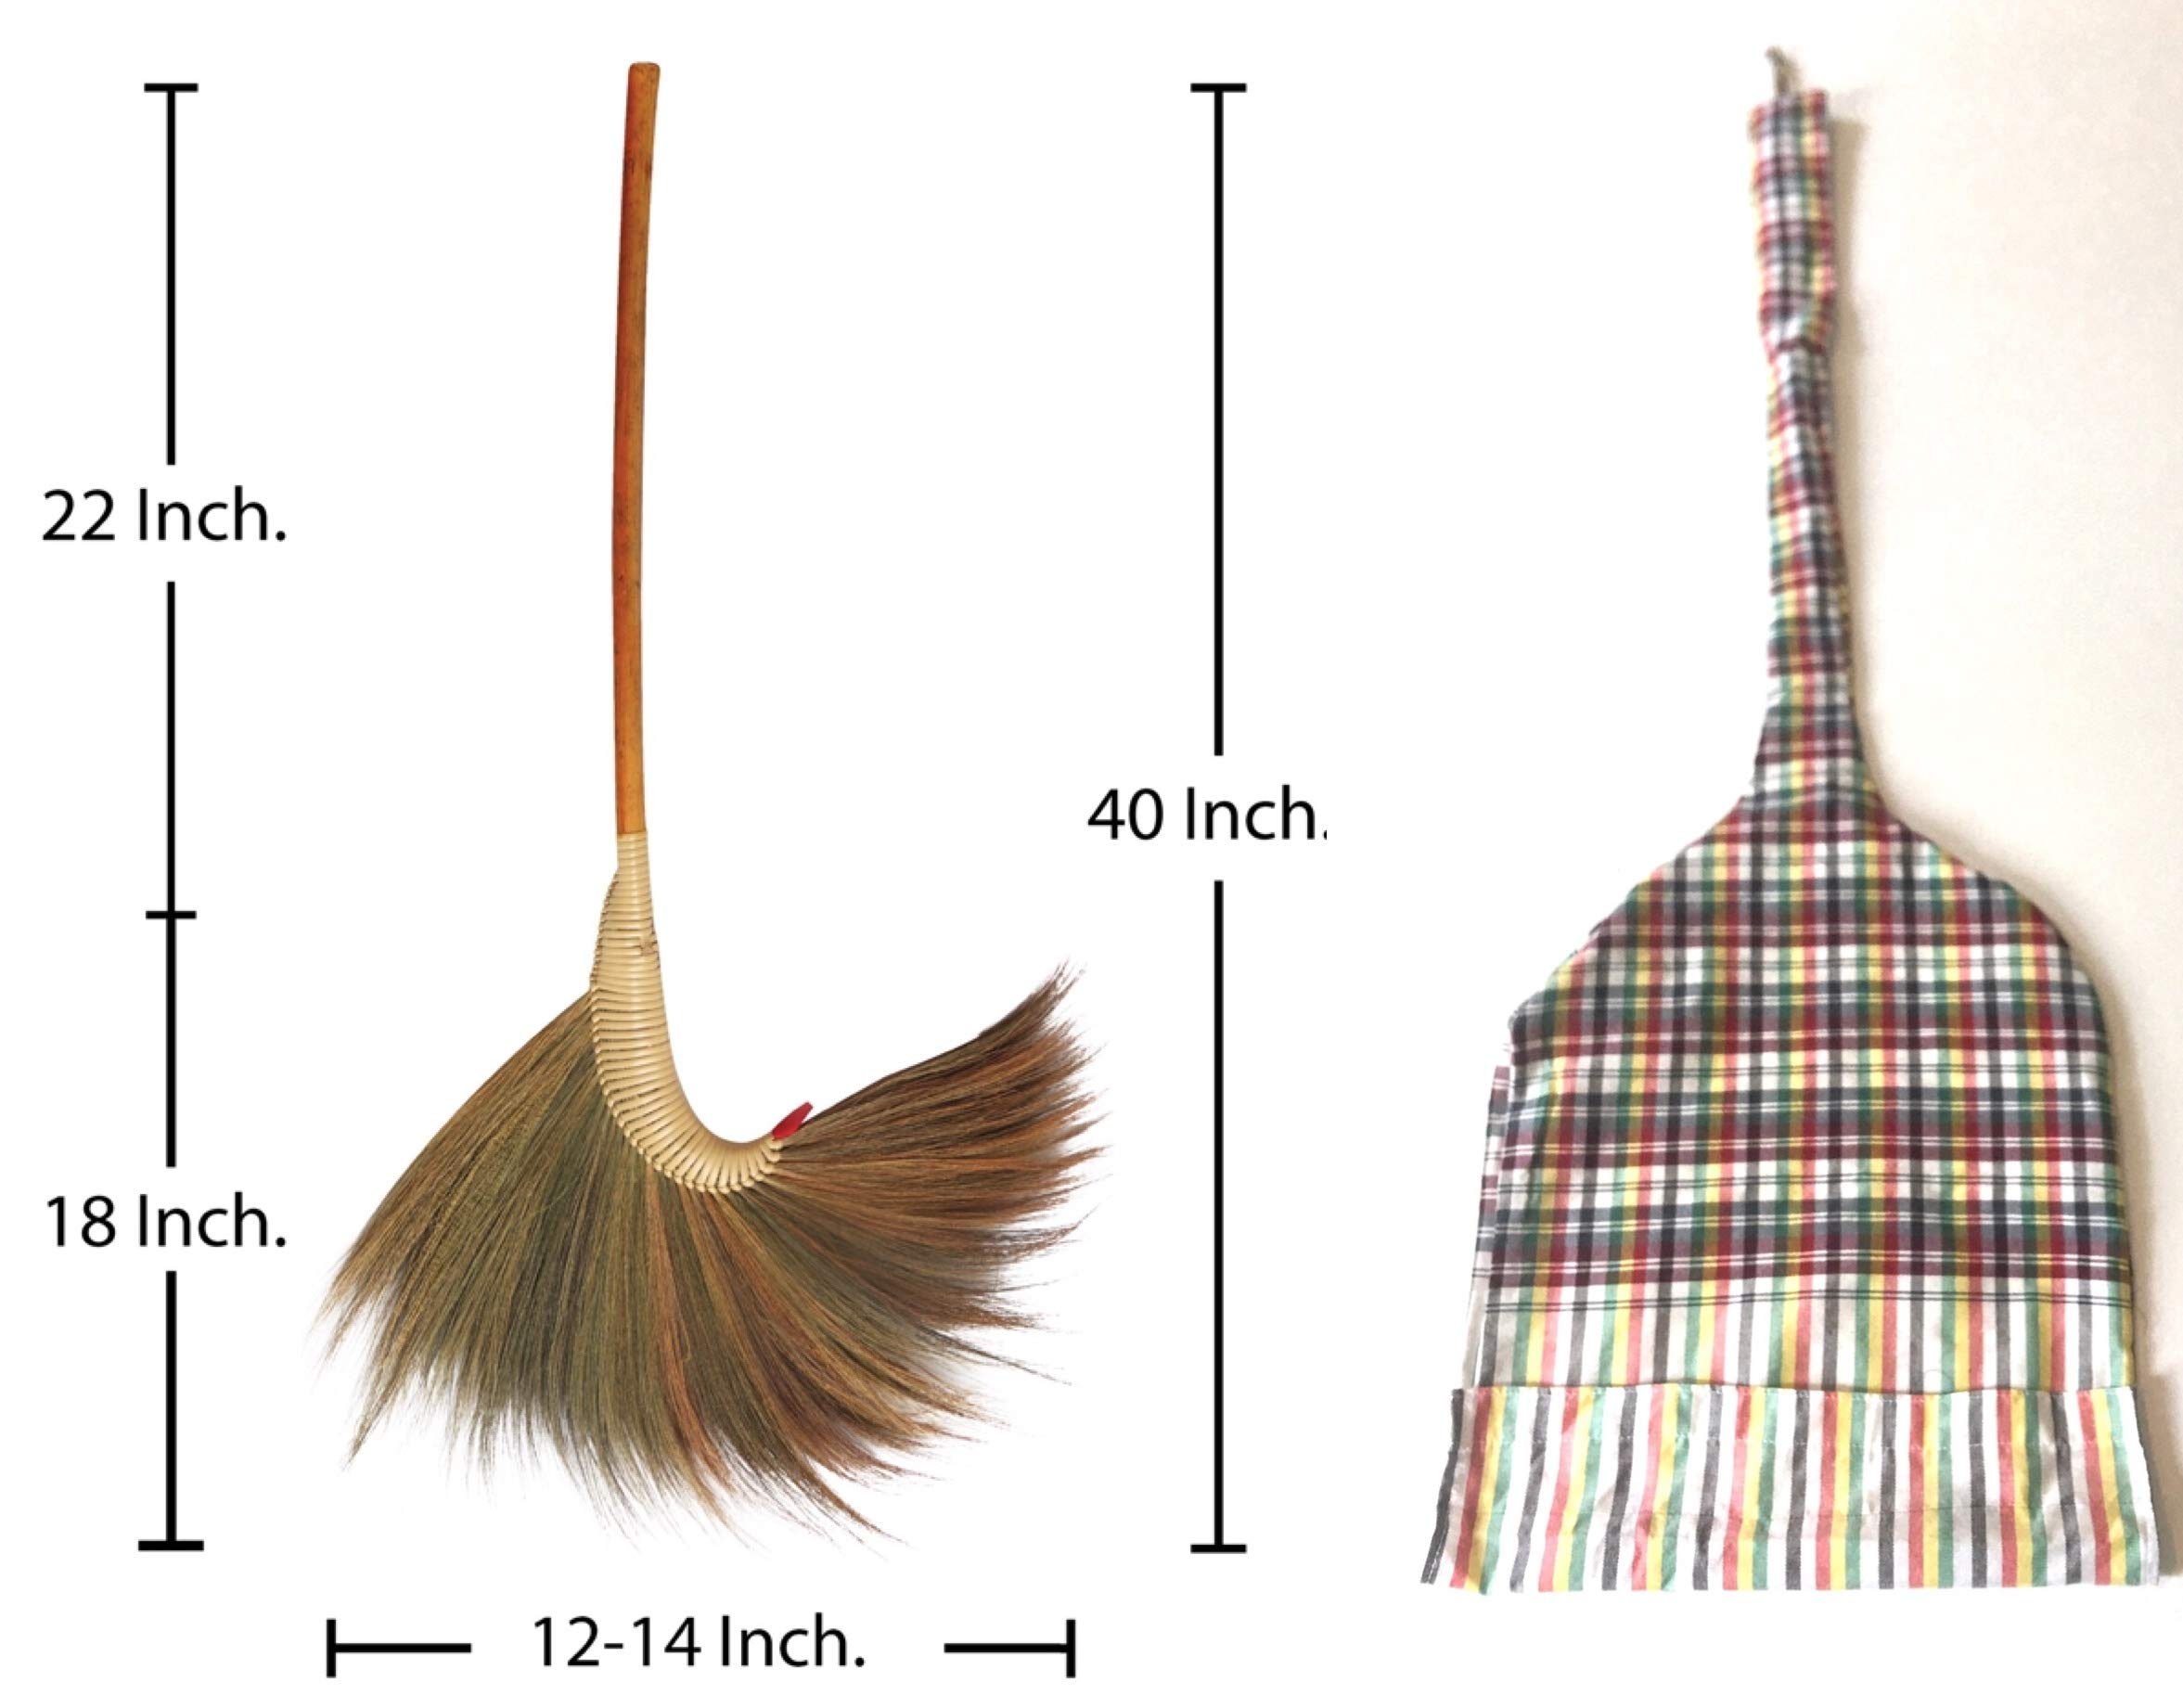 Natural Grass Broom 100% Handmade with a Bamboo Broomstick Handle and Nylon Hand Grip - Thai Broom for Indoor Outdoor Use - Soft, Large, Wide, Vintage and Decorative Natural Asian Broom by KalokeKala